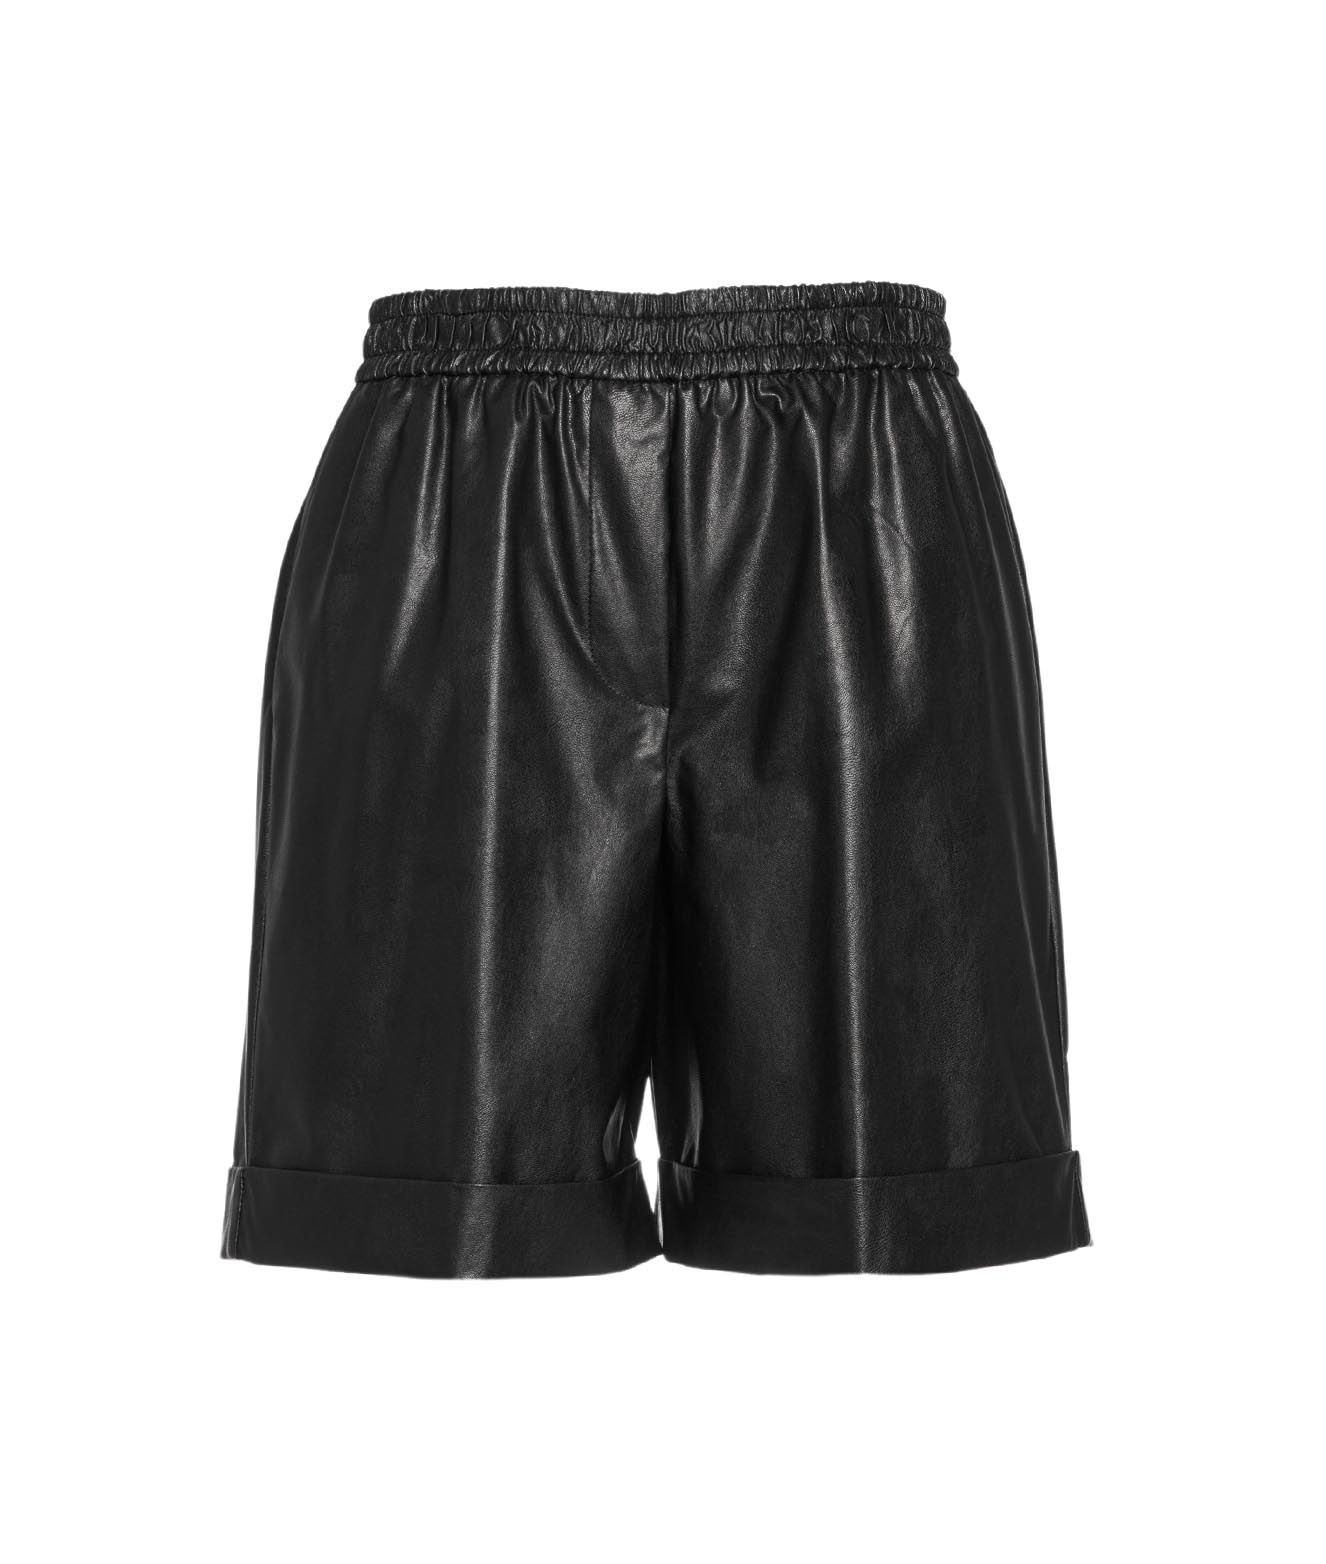 Nude Leathers SHORTS IN ECO LEATHER